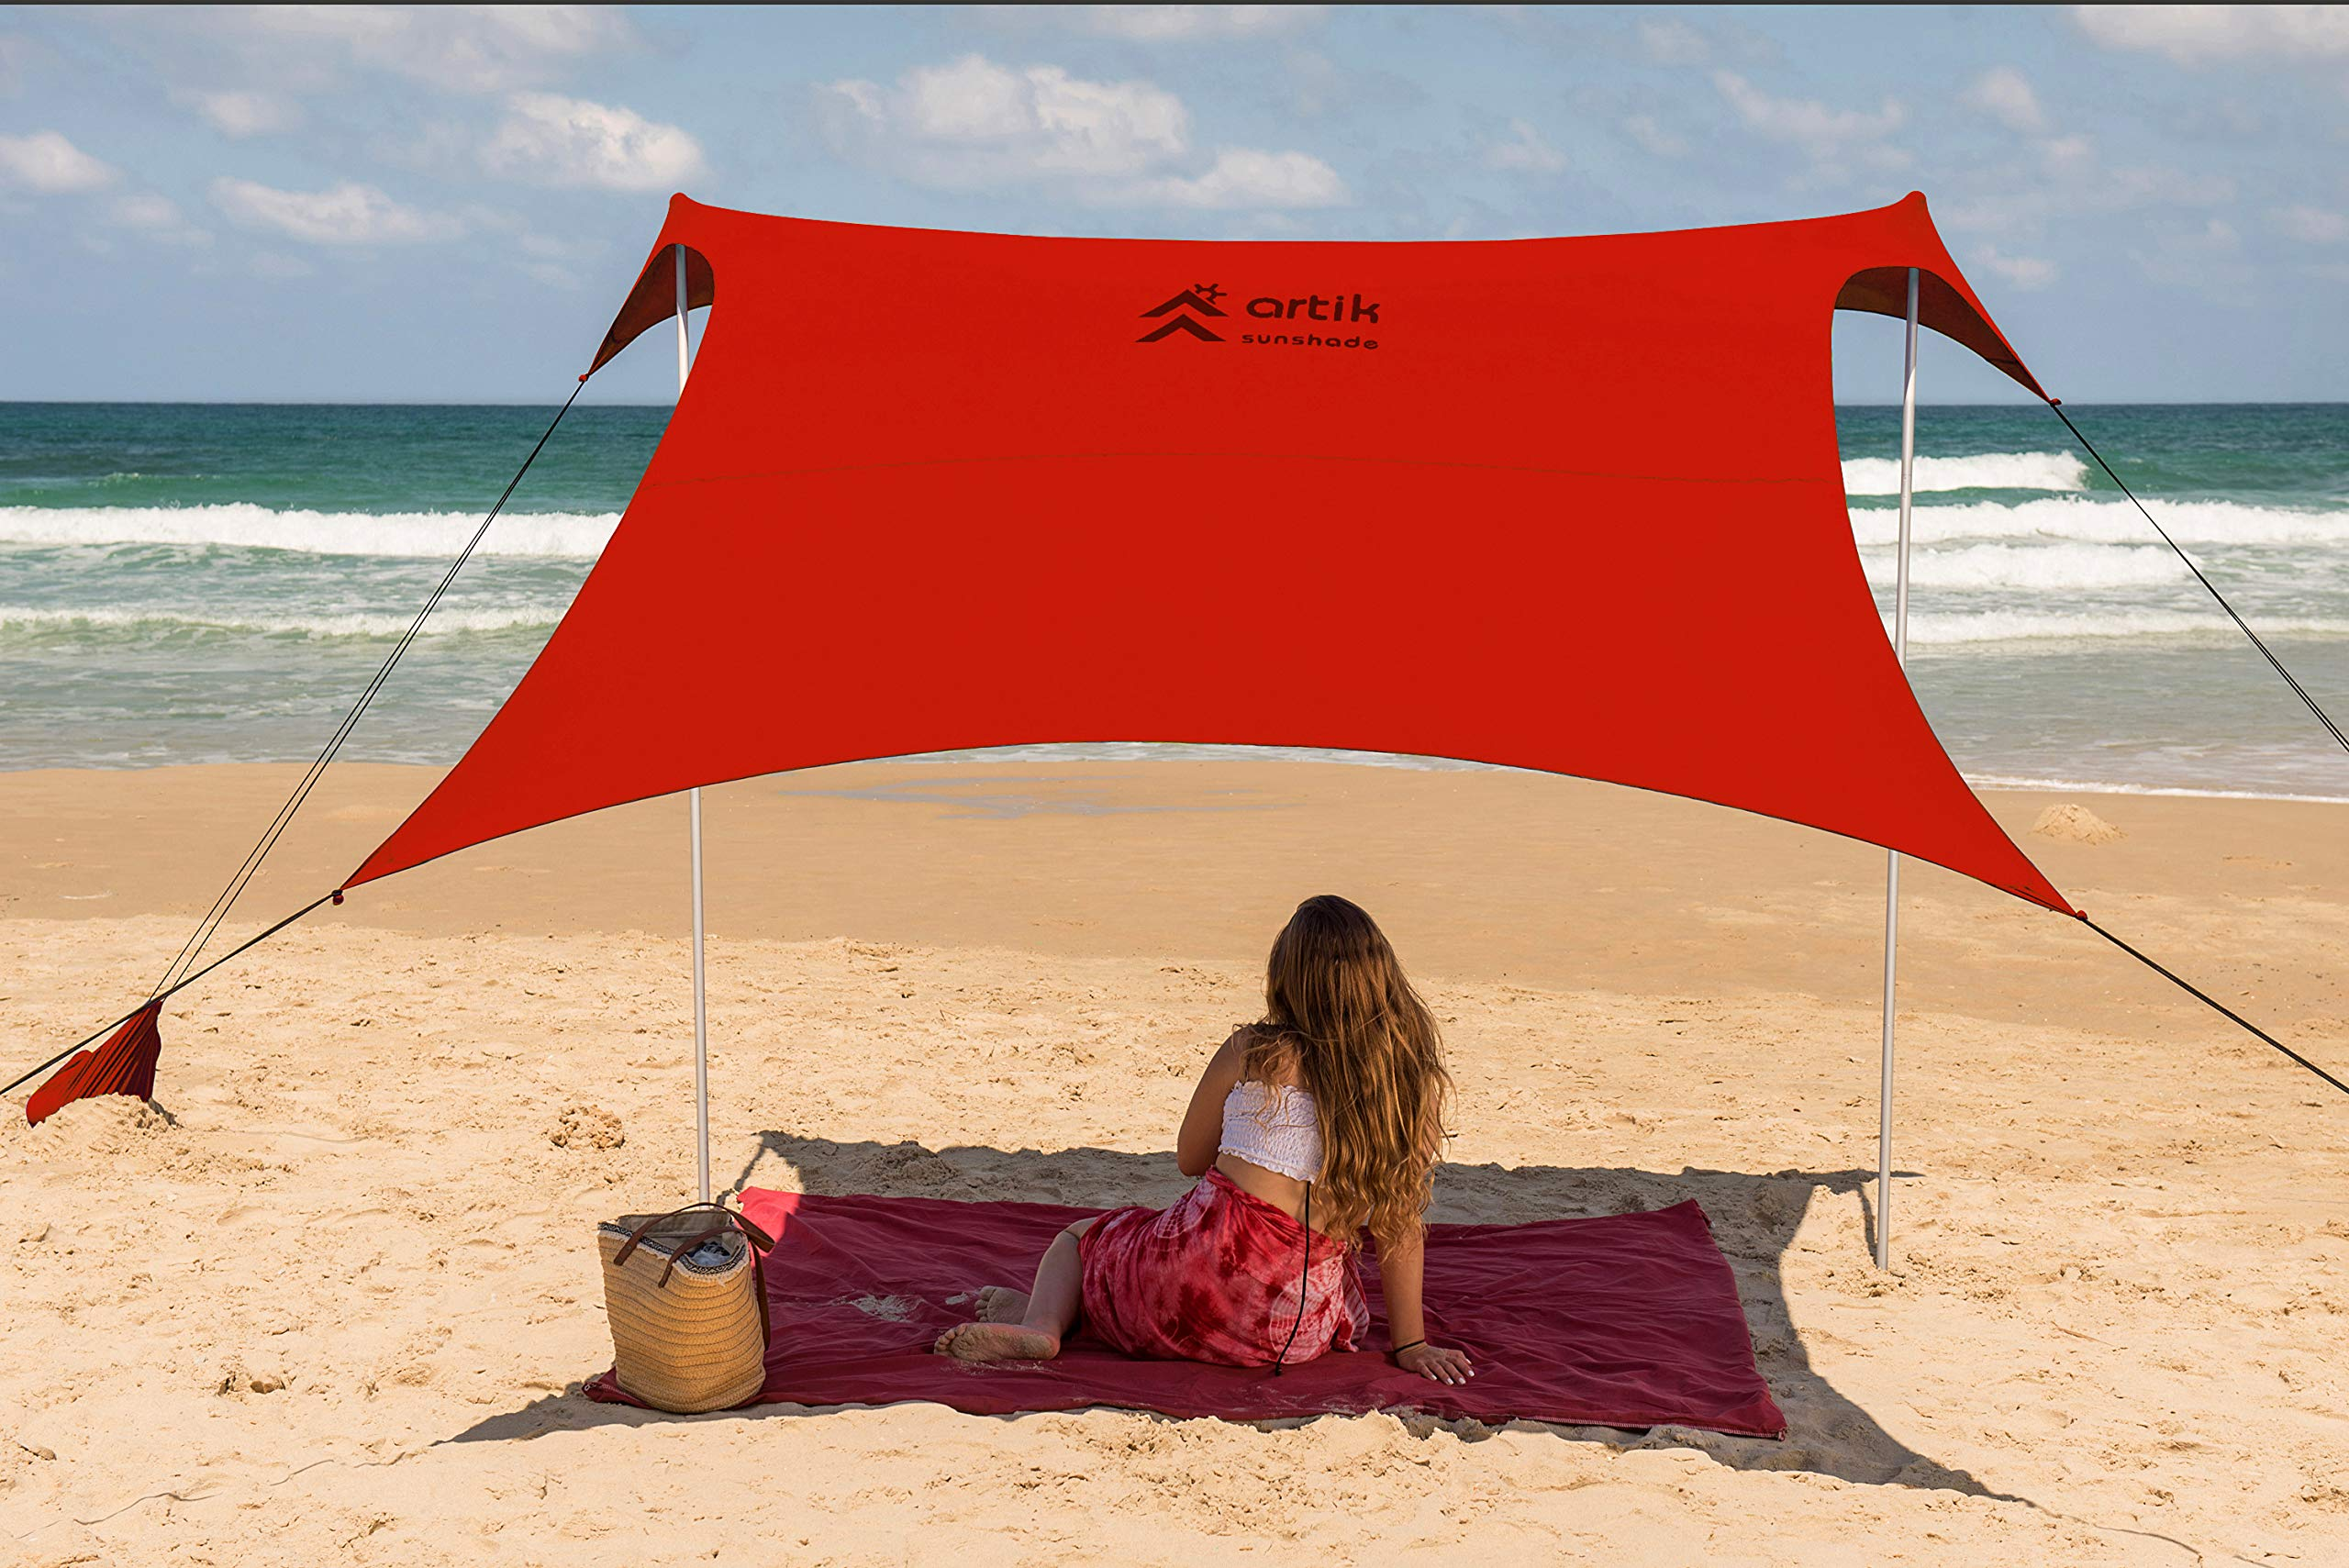 Beach Tent Sunshade Family Size 9.8'X9.8', 7ft Tall with Sandbag Anchors, Simple & Versatile. SPF50, Lycra SunShelter for The Beach,Camping and Outdoors. (red, Medium) by ARTIK SUNSHADE